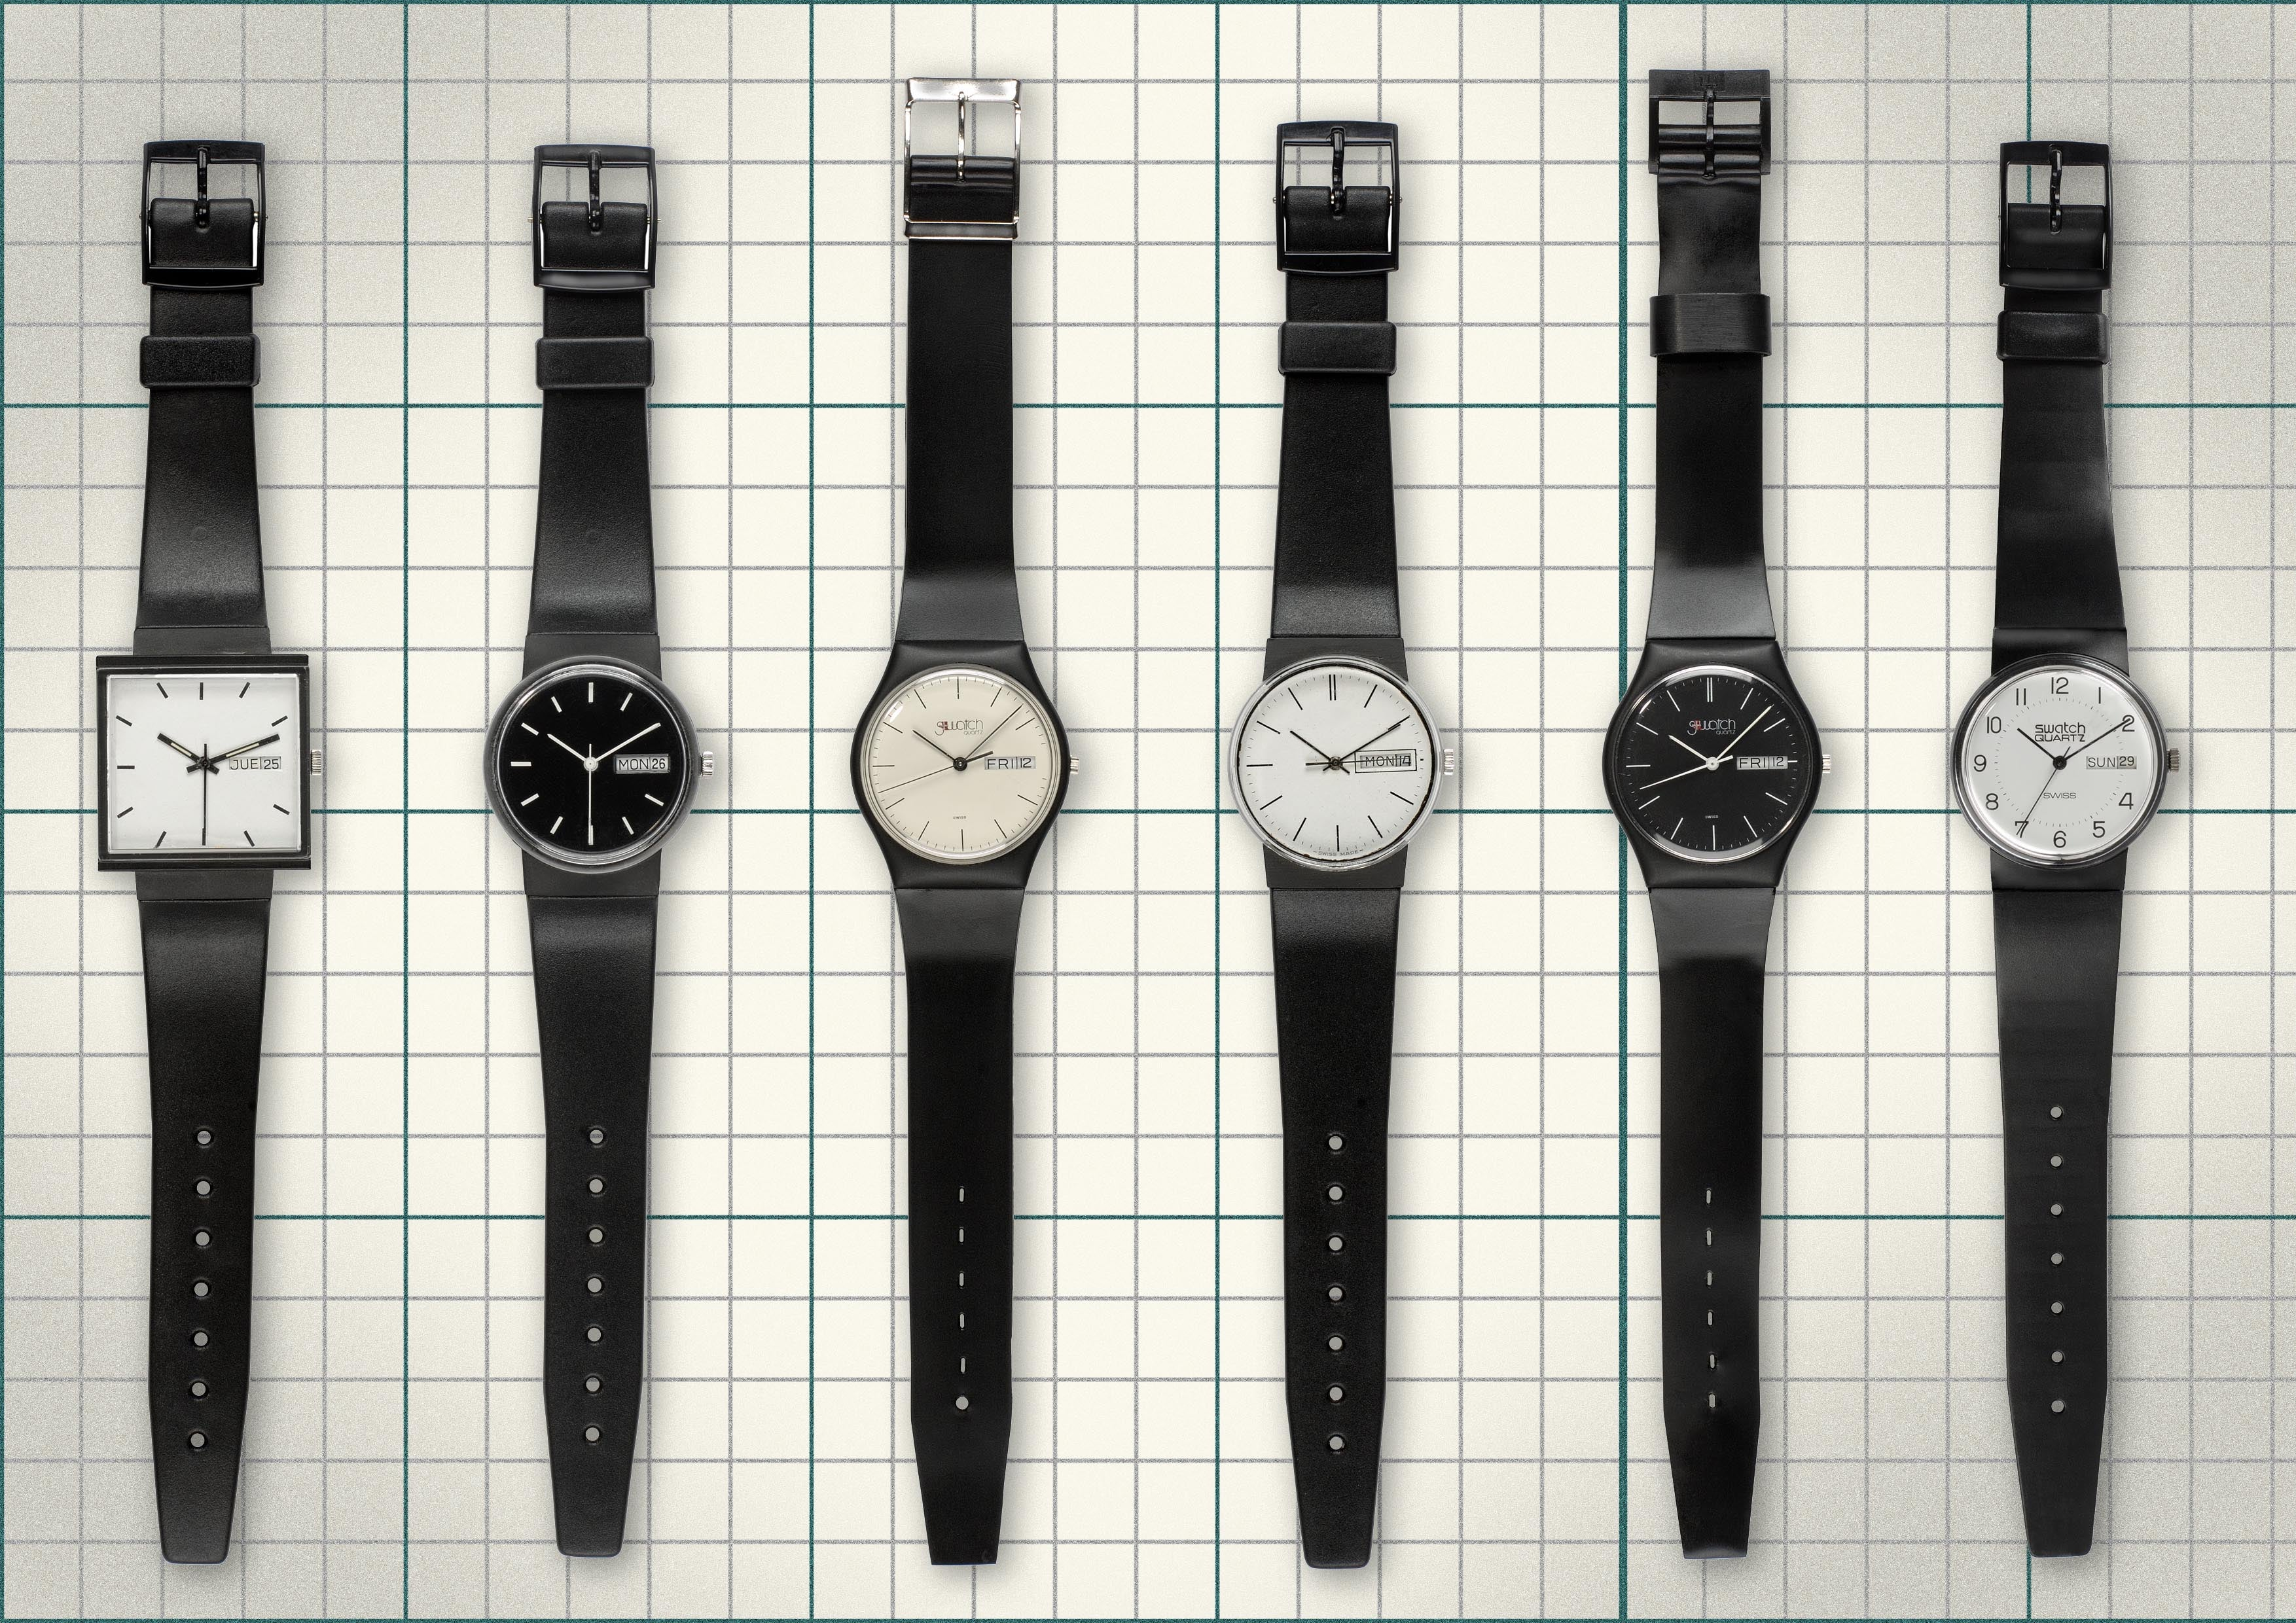 Swatch prototypes from 1981 before they were commercially launched for A Collected Man London